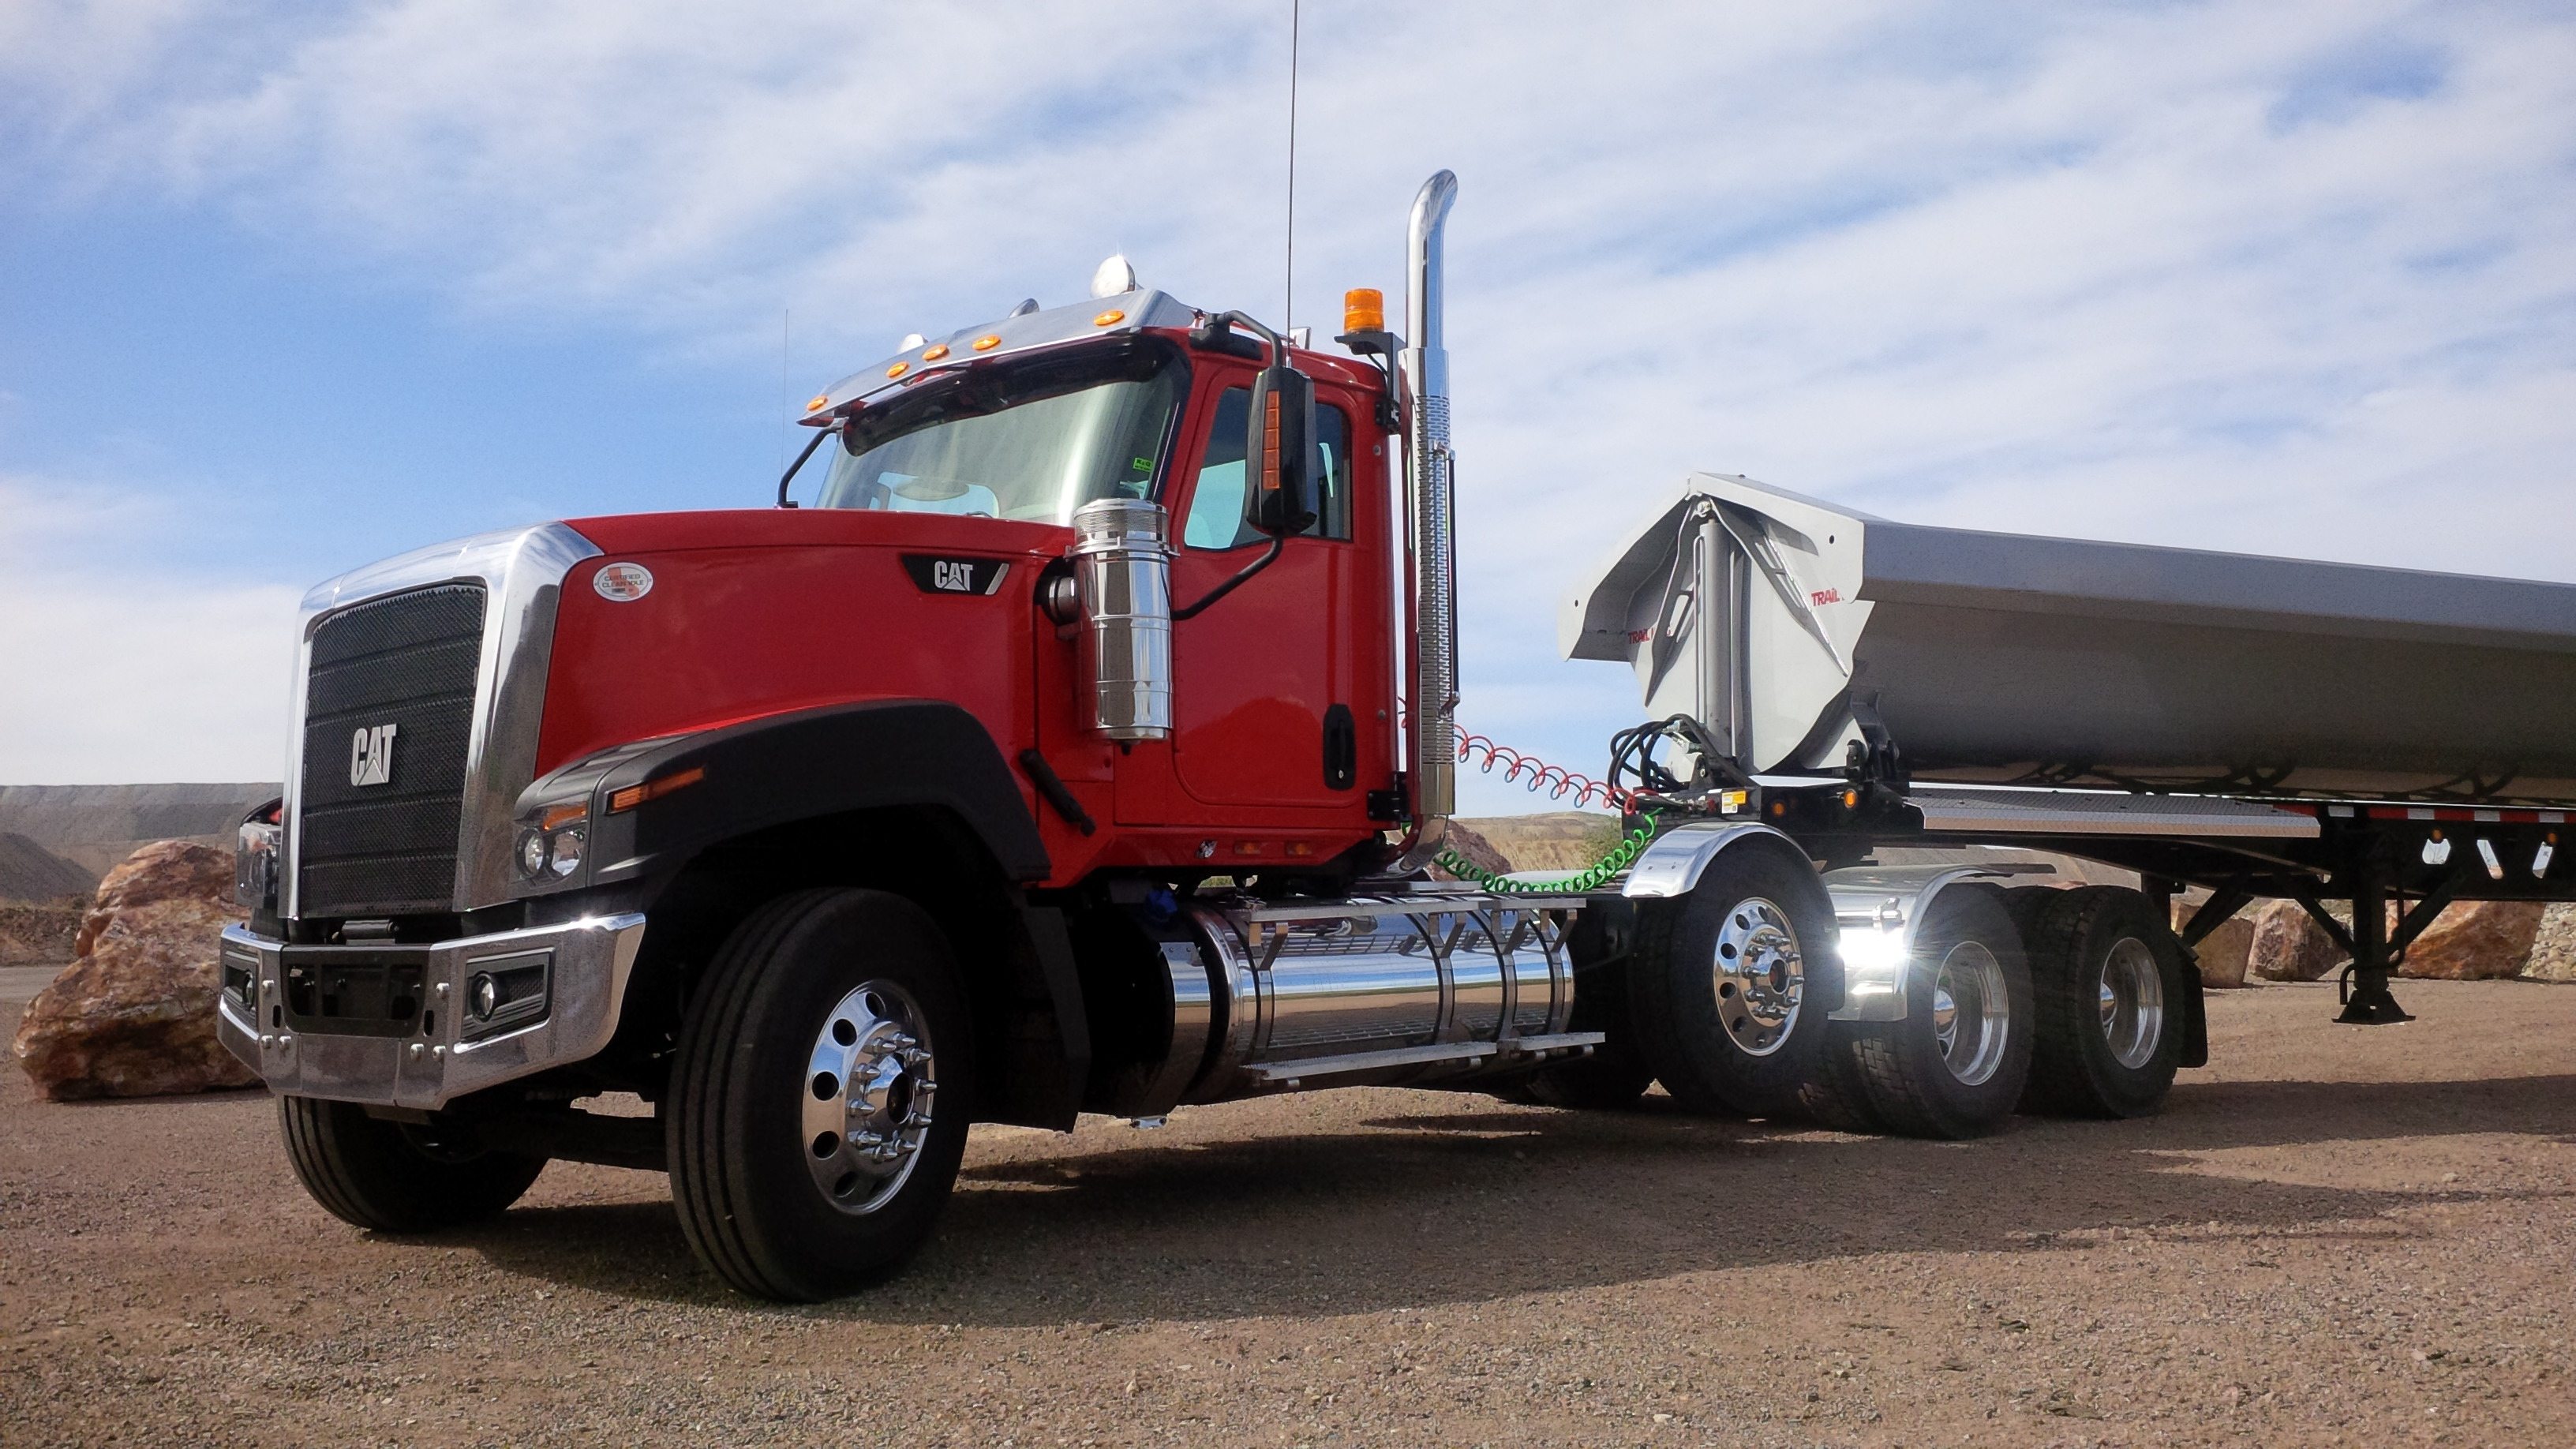 We drove this Cat CT680 with 28 tonnes of boulders in the Trail King trailer .